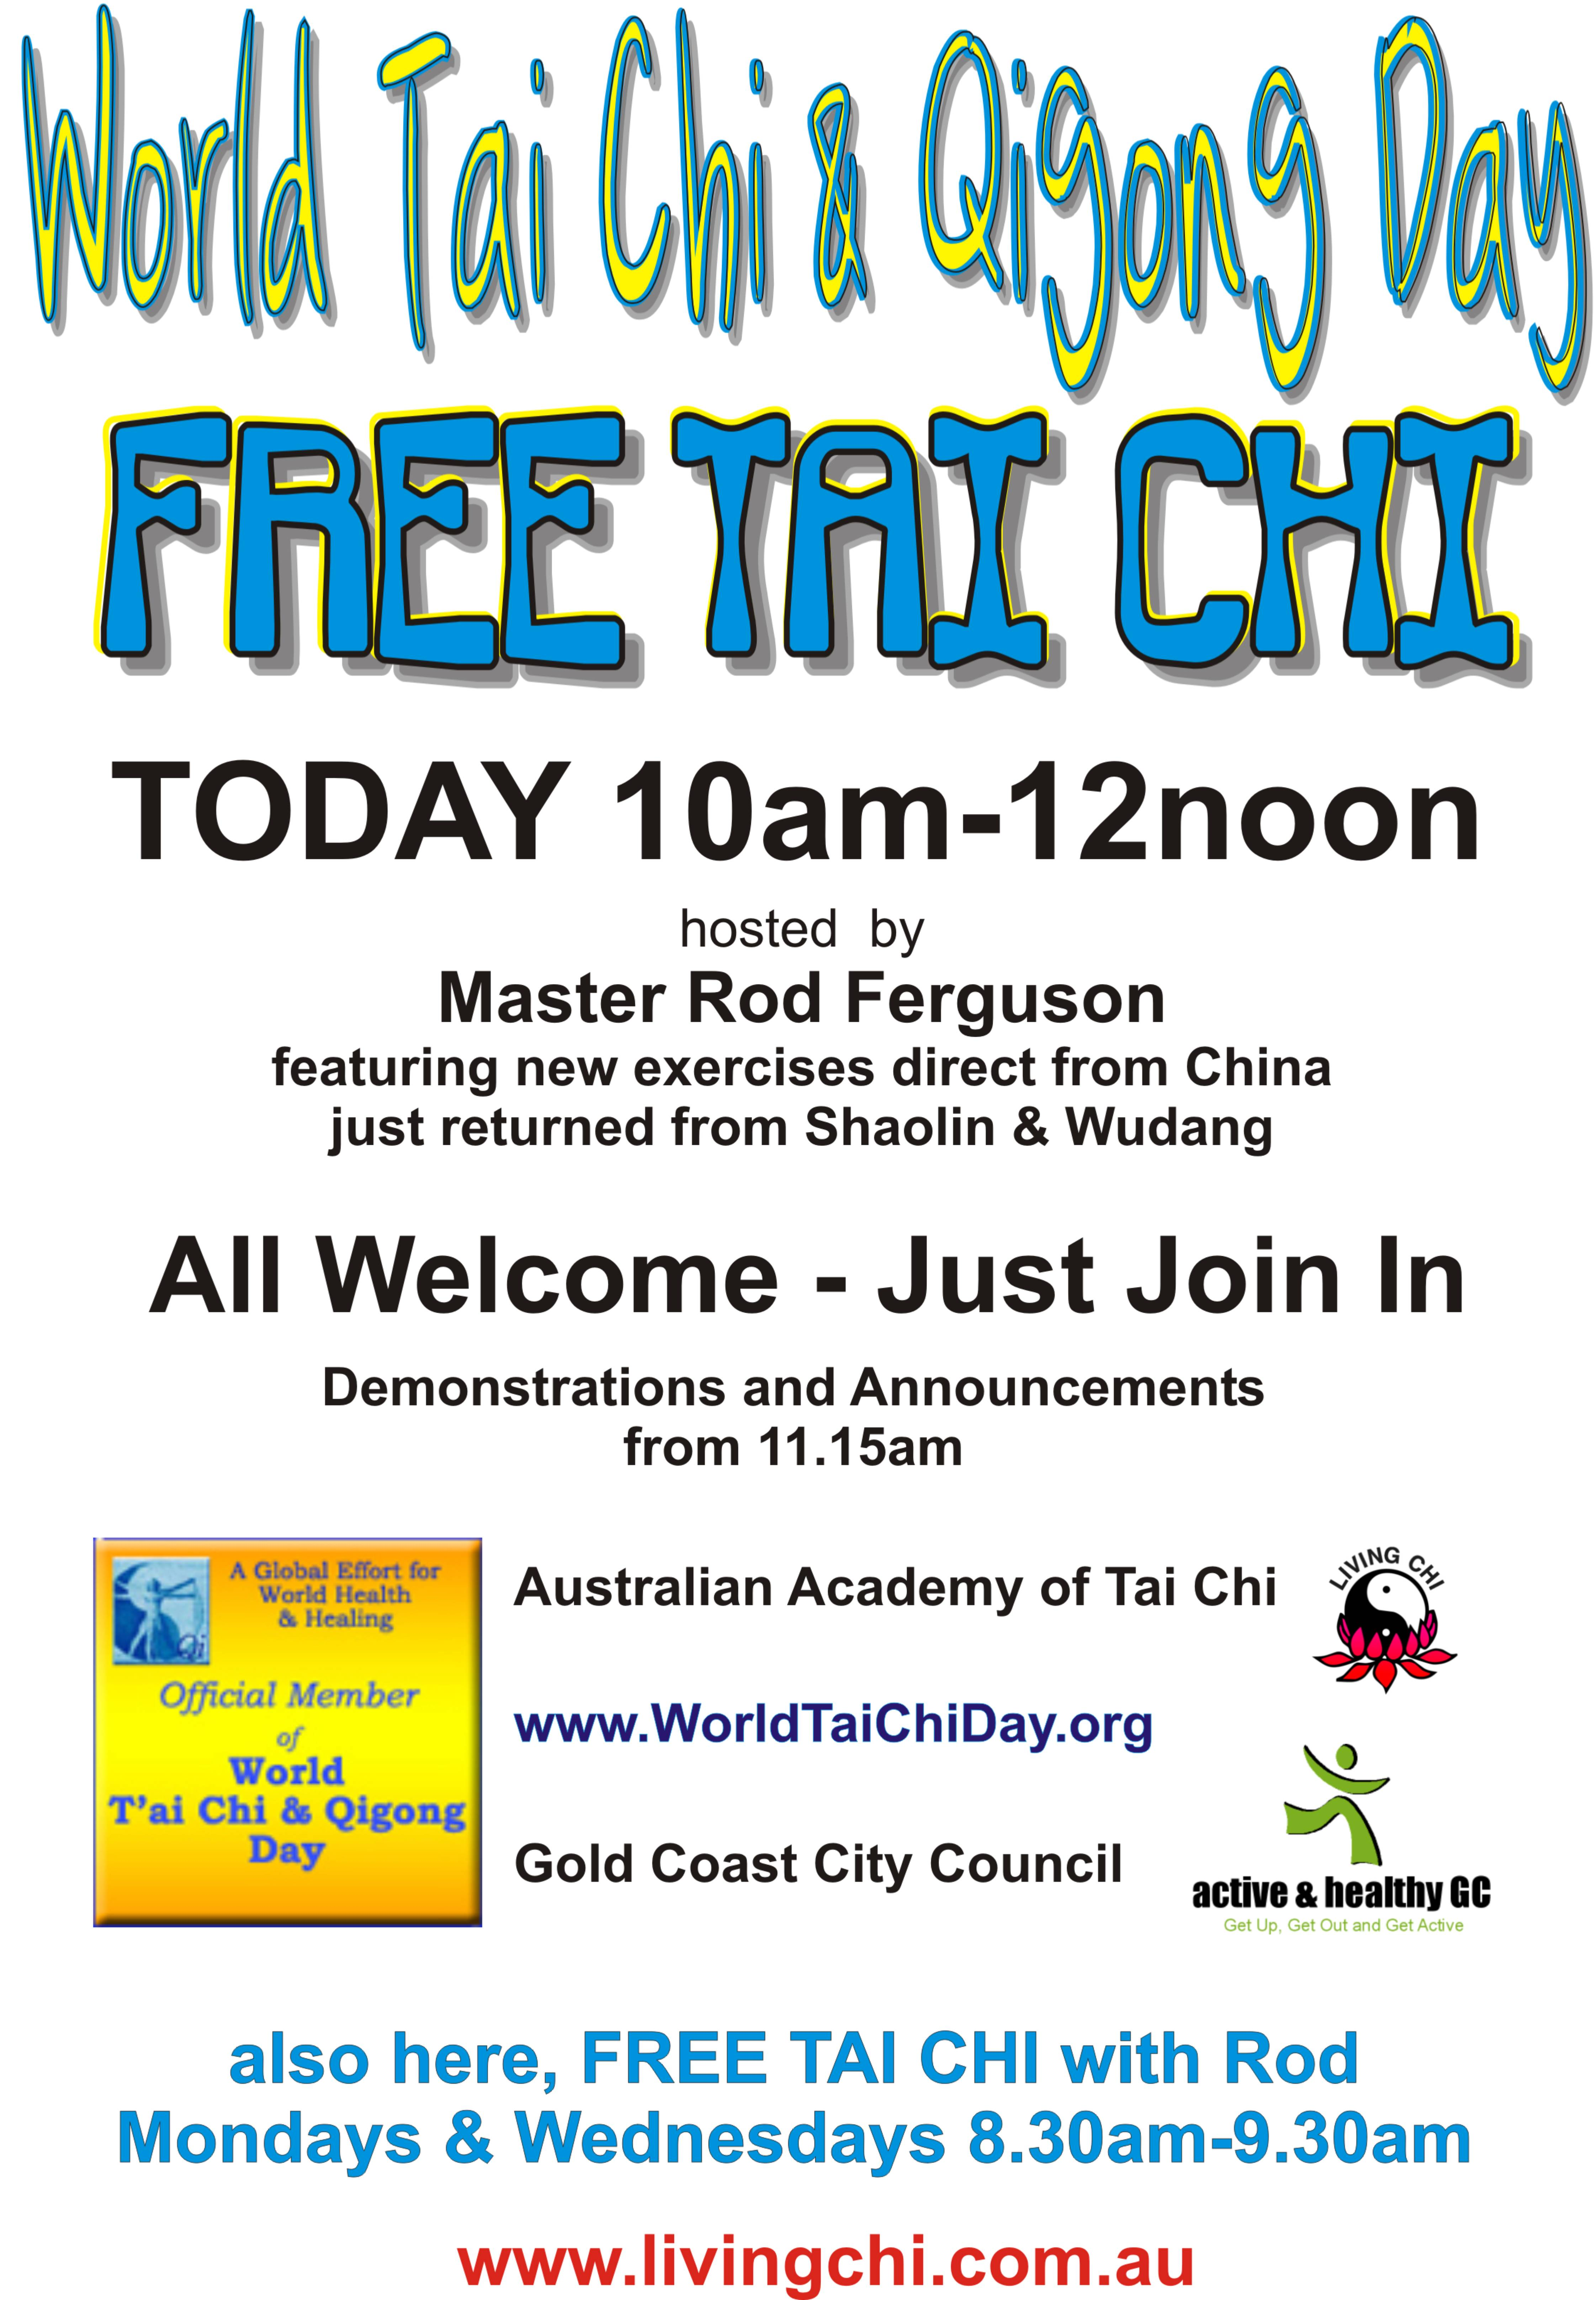 World Tai Chi Day 2011 - Australian Academy of Tai Chi and